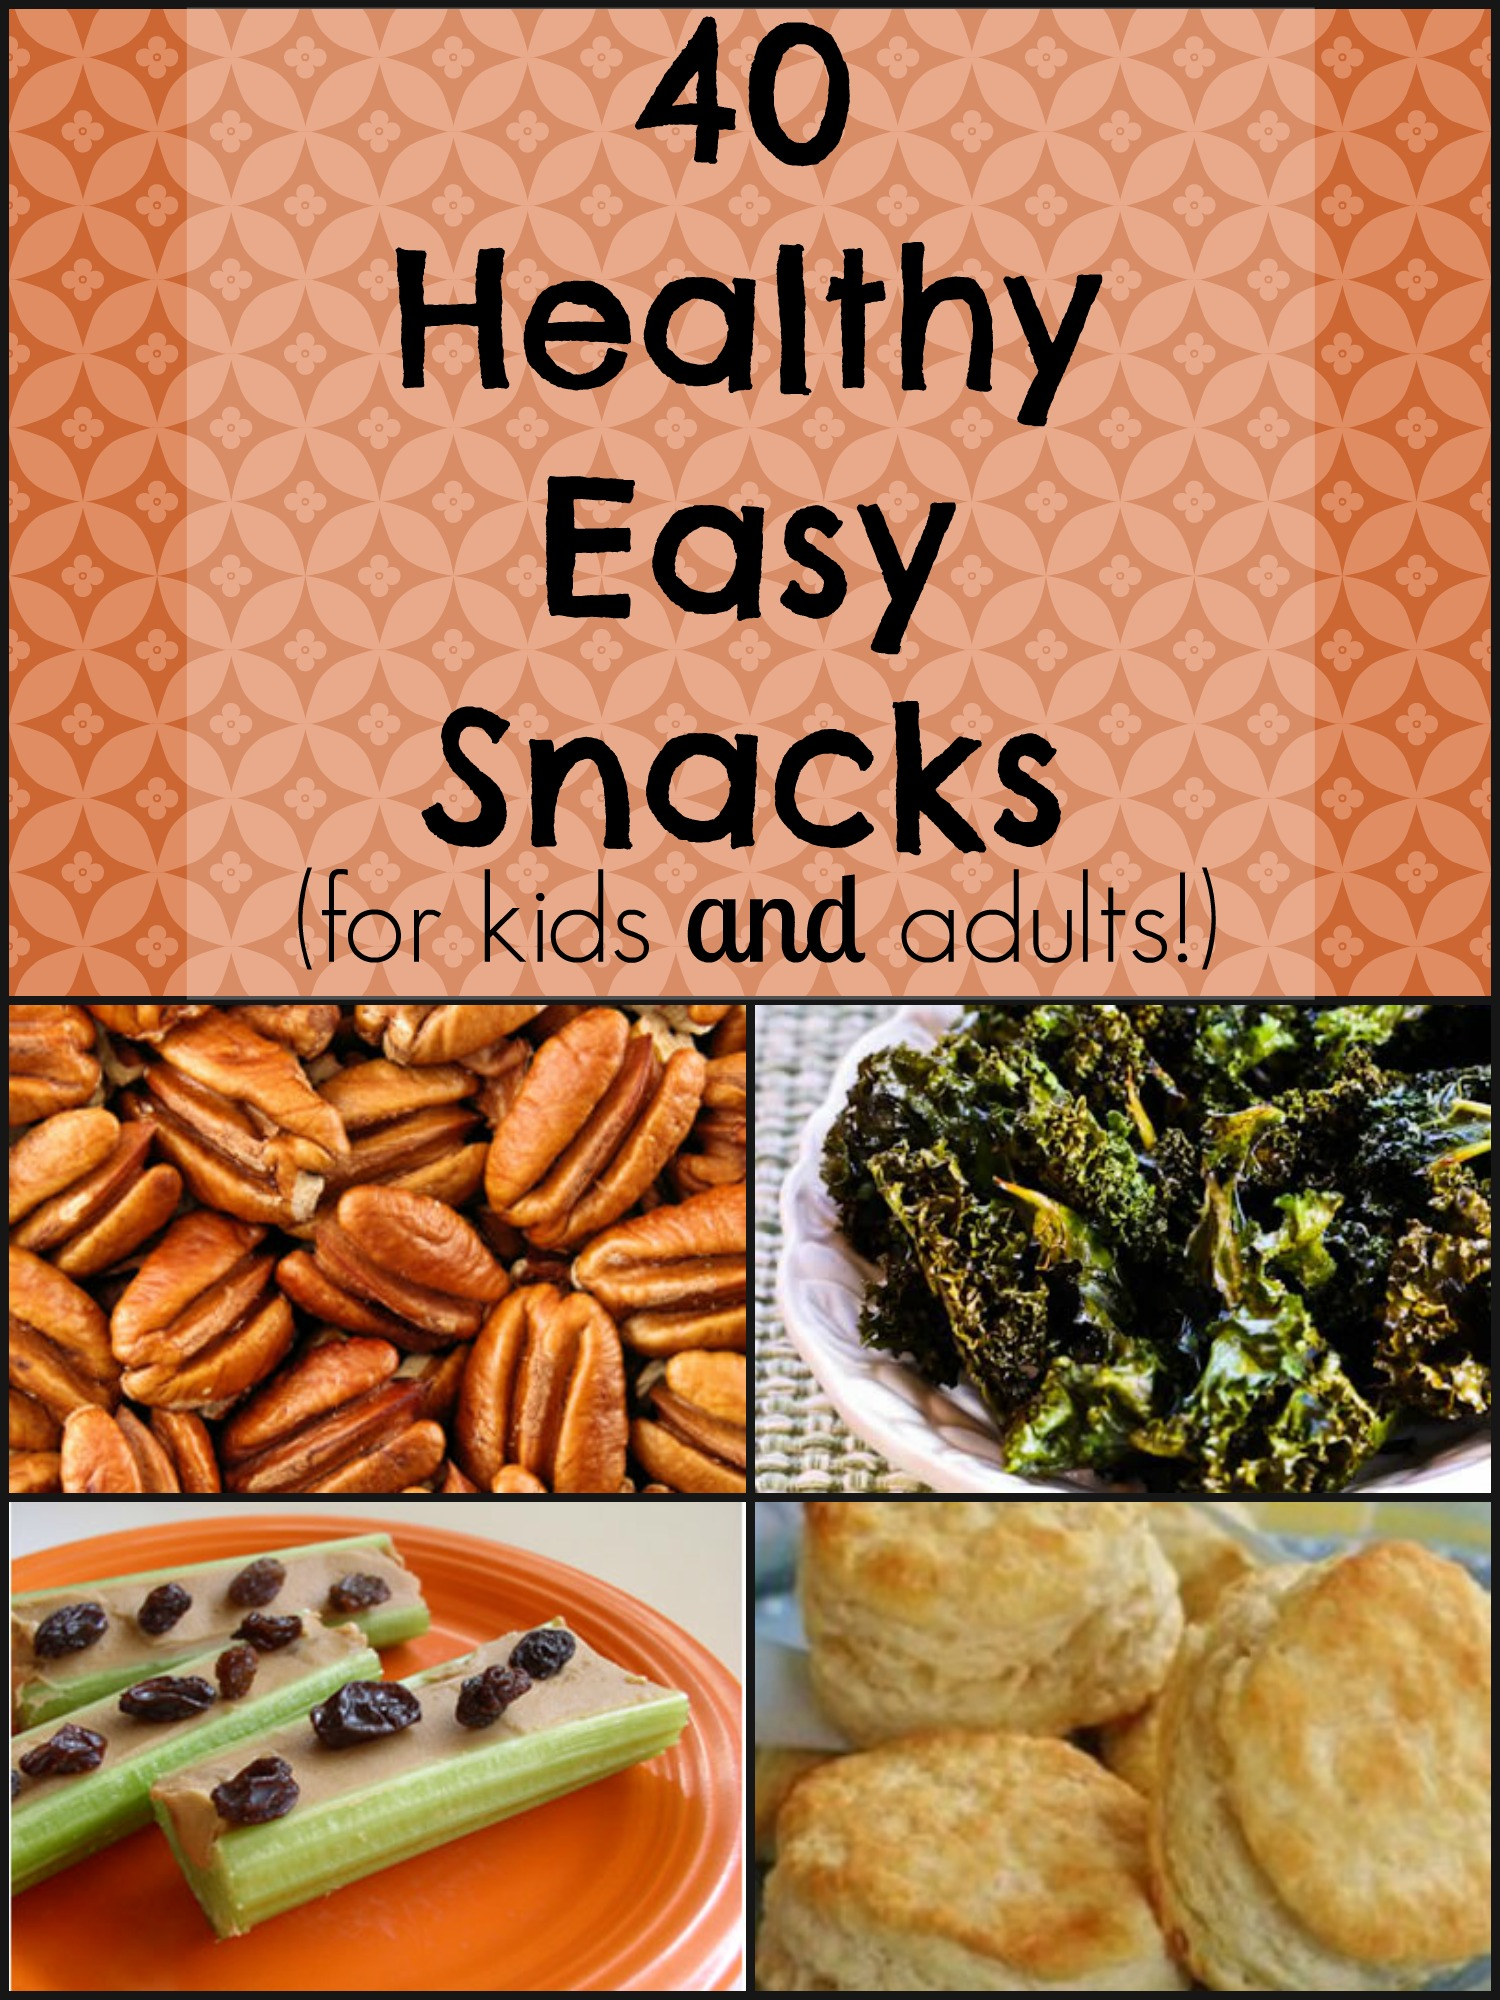 40 Healthy Easy Snacks For Kids And Adults